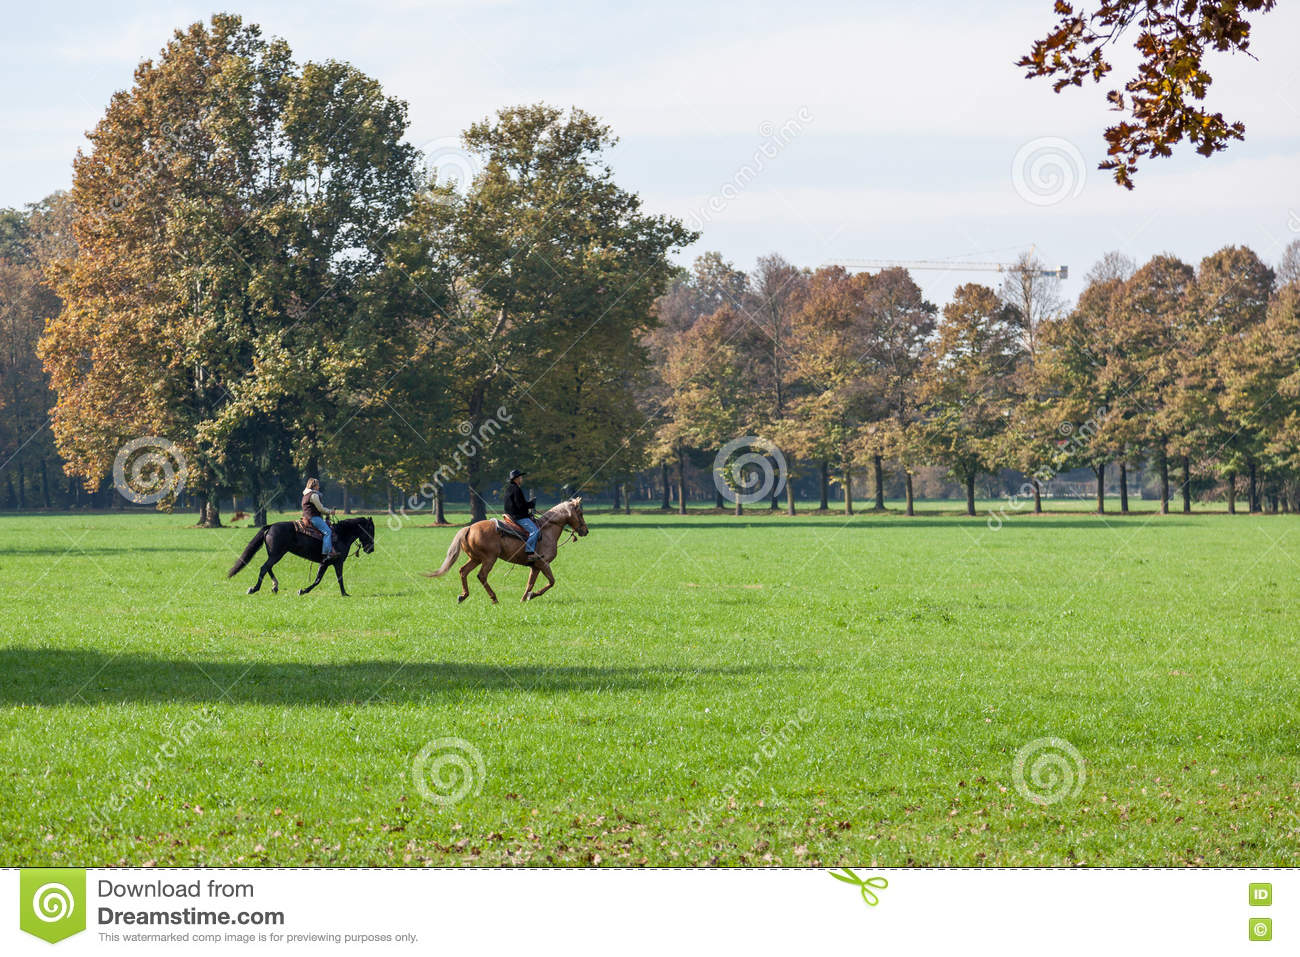 MONZA, ITALY/EUROPE - OCTOBER 30 : Horse riding in Parco di Monza Italy on October 30, 2010. Unidentified people.